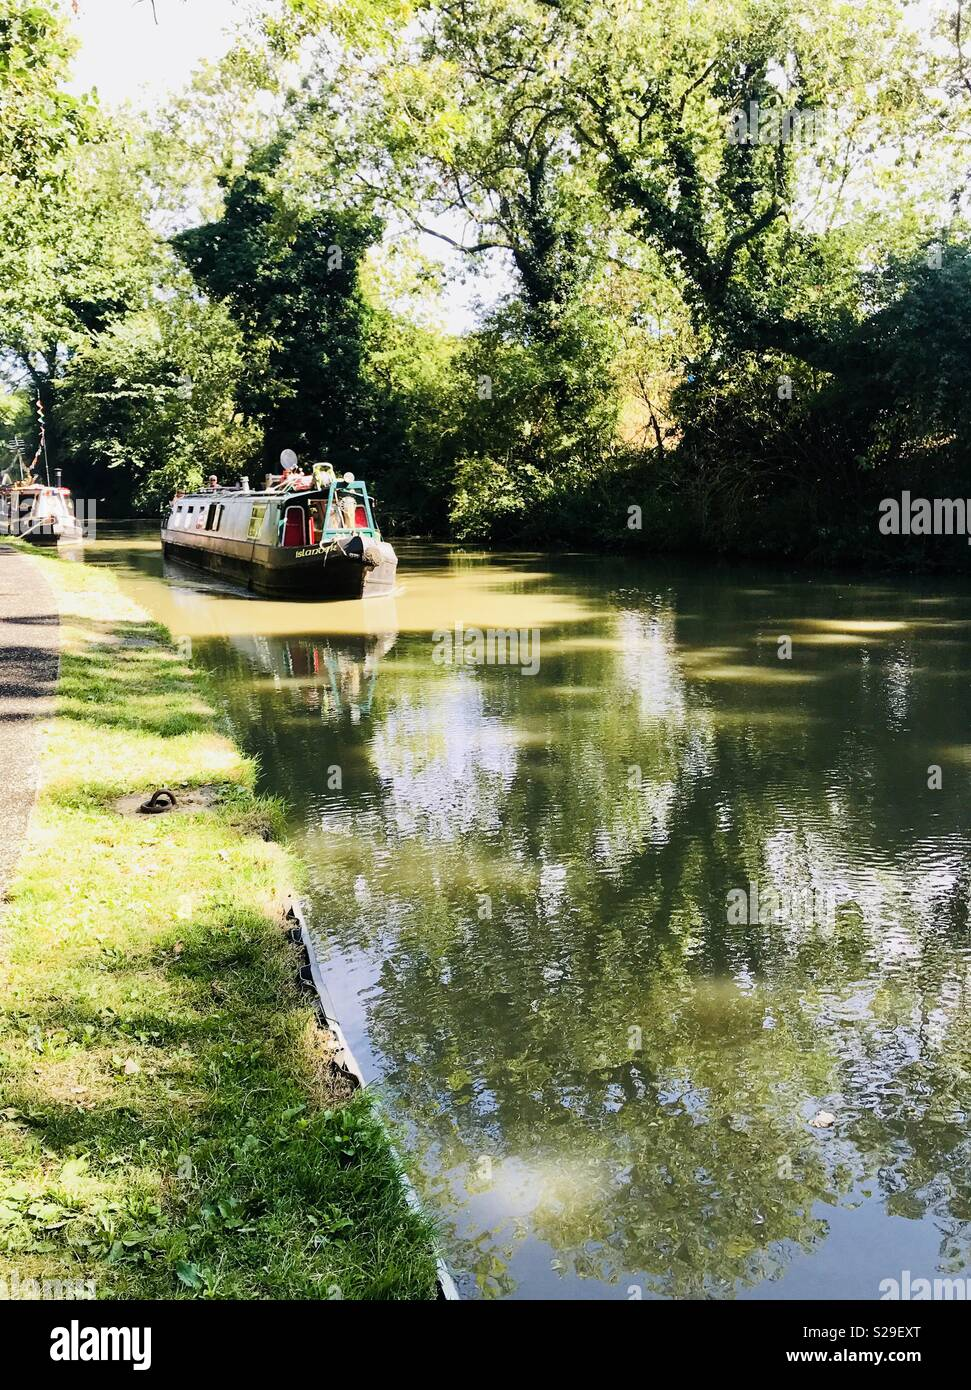 Grand Union canal near Stoke Bruerne, Northamptonshire, U.K. - Stock Image